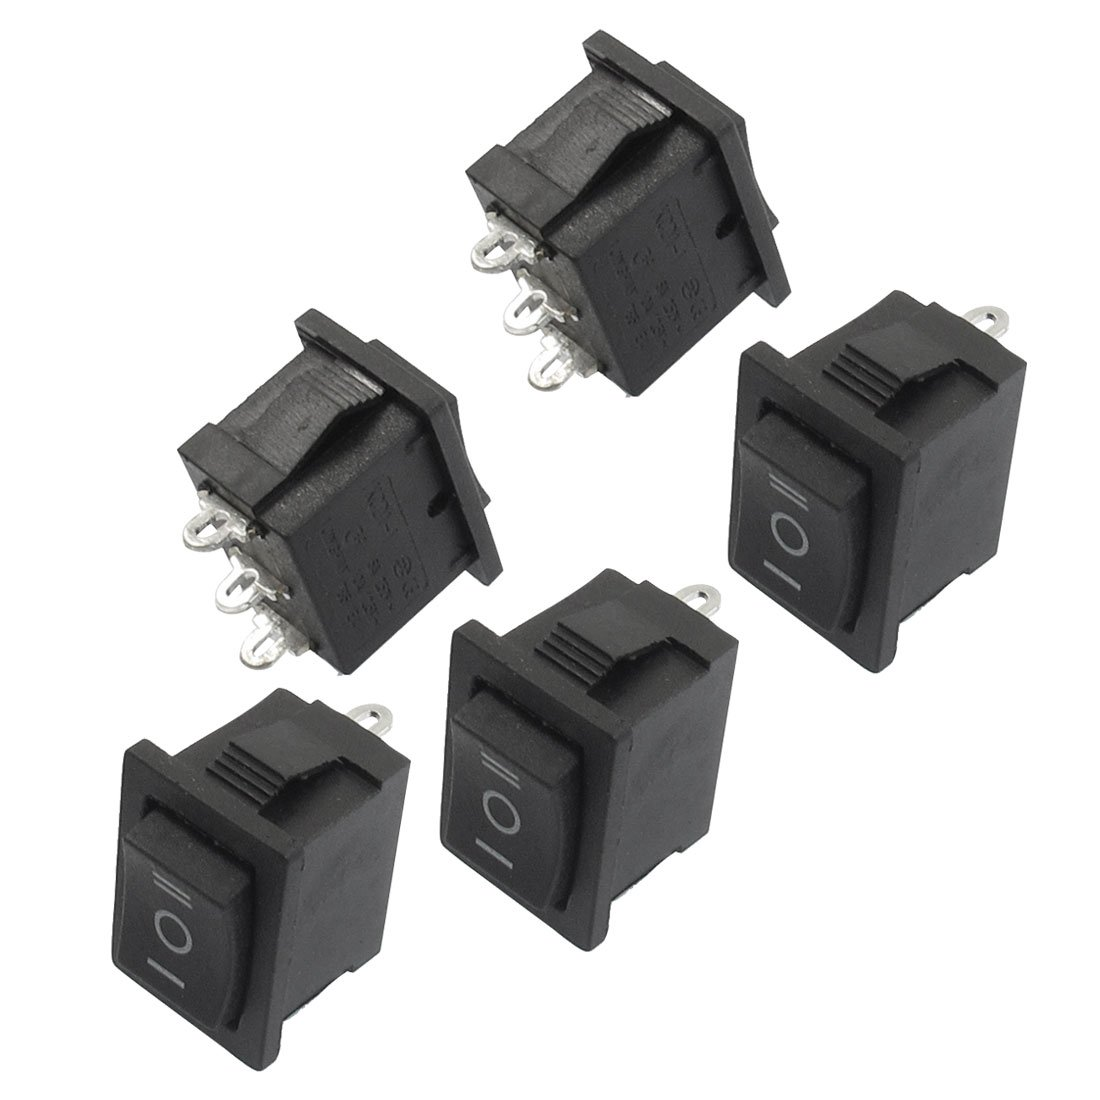 Promotion! 5 pcs SPDT On/Off/On Mini Black 3 Pin Rocker Switch AC 6A/250V 10A/125V g126y 2pcs red led light 25 31mm spst 4pin on off boat rocker switch 16a 250v 20a 125v car dashboard home high quality cheaper